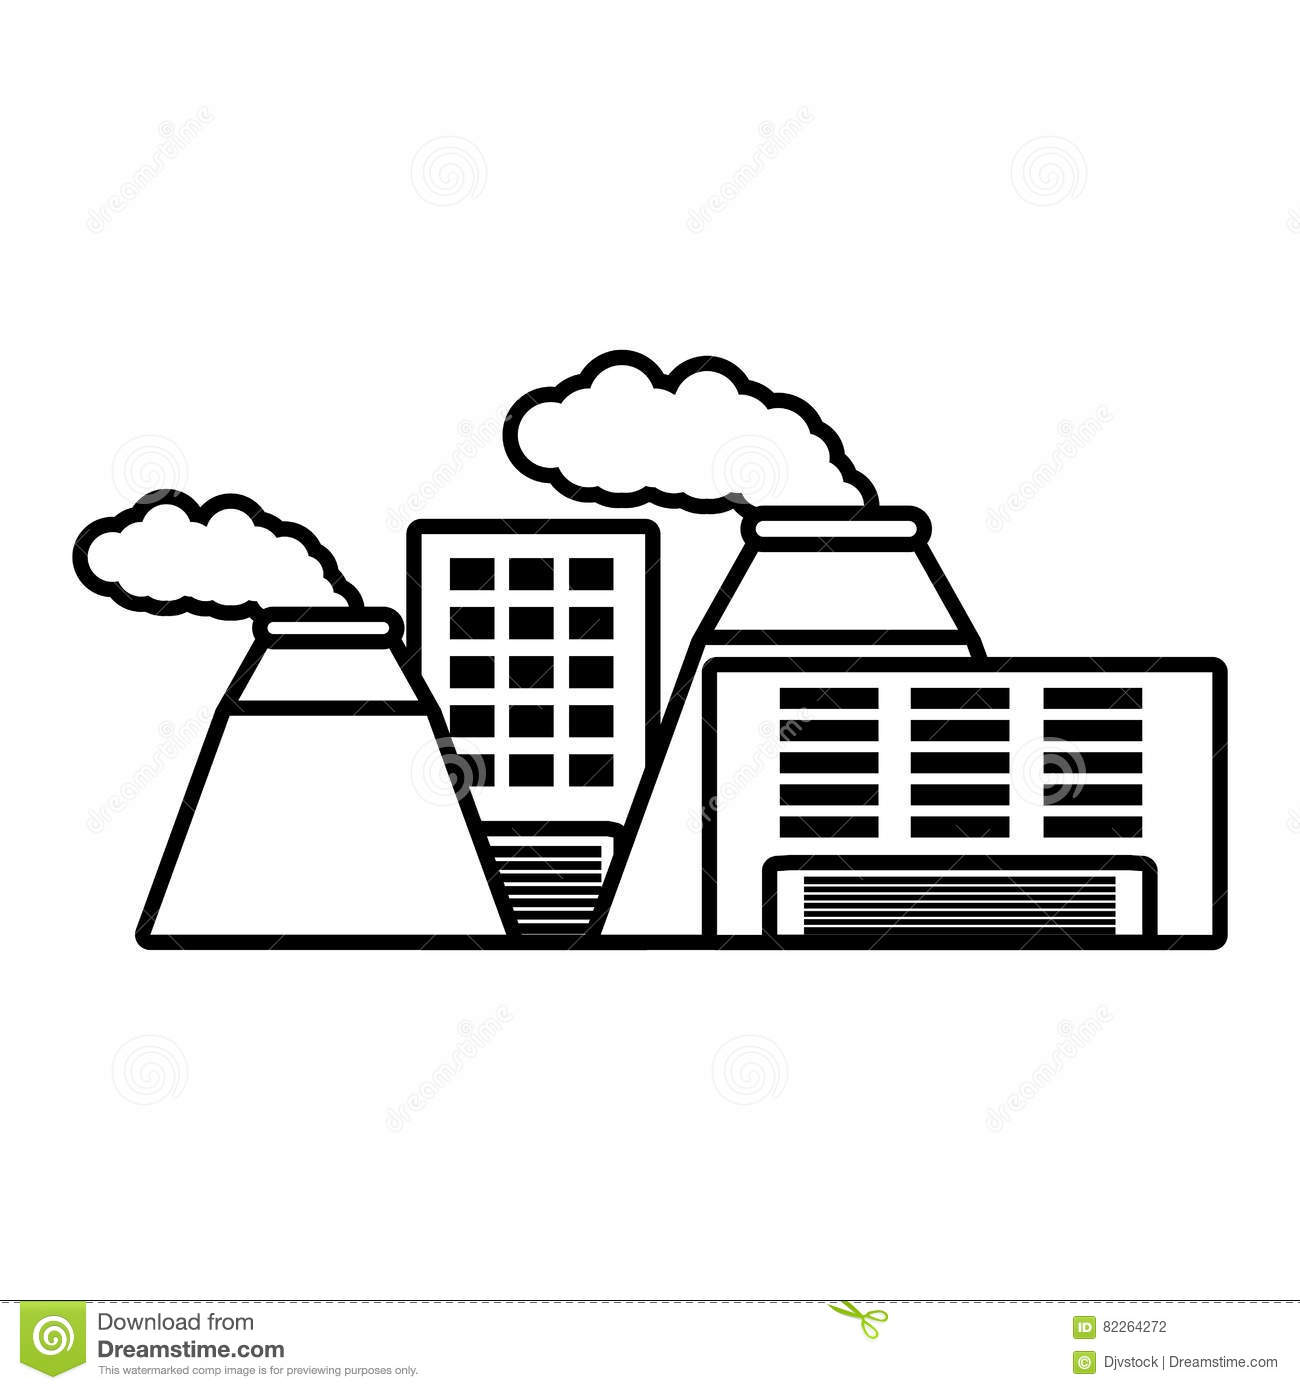 Plant Nuclear And Factory Building Outline Stock Illustration